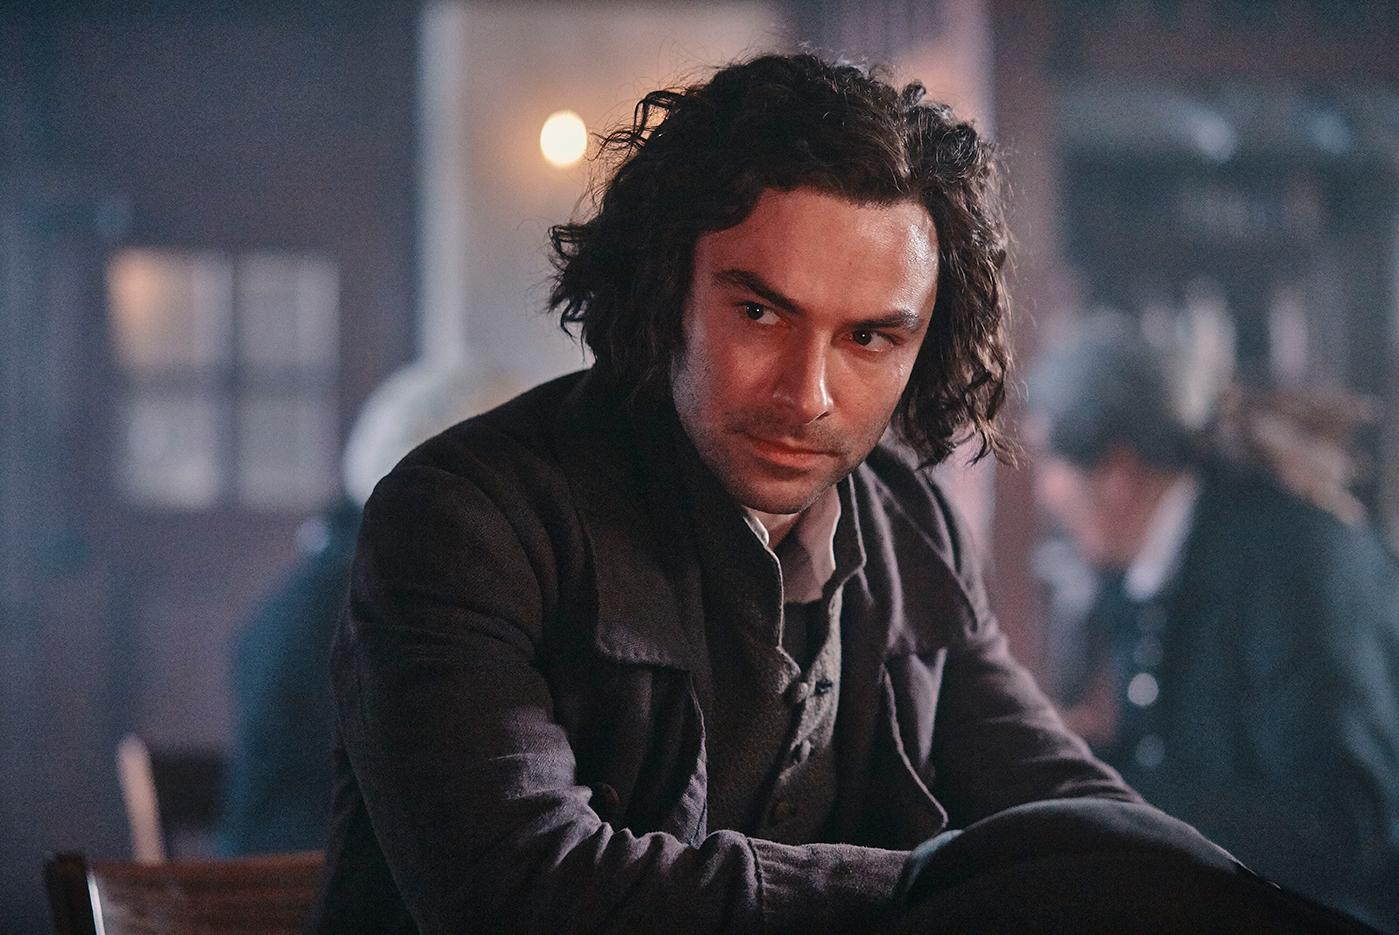 Aidan Turner as Ross in Poldark. Photo: Mammoth Screen for BBC and MASTERPIECE